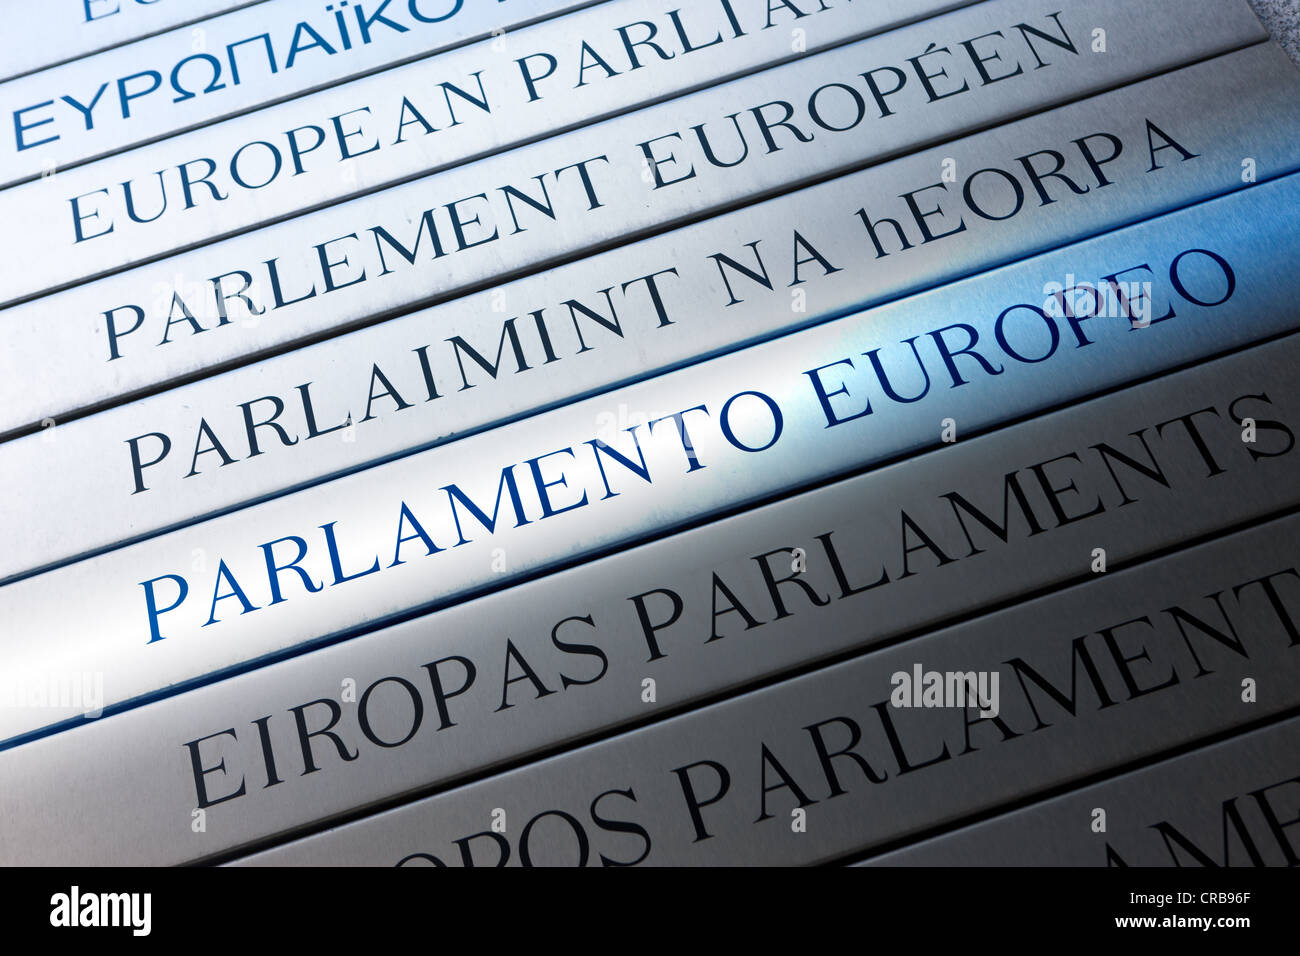 Italian reference to the European Parliament on multilingual sign, Euro-City, Brussels, Belgium, Europe - Stock Image